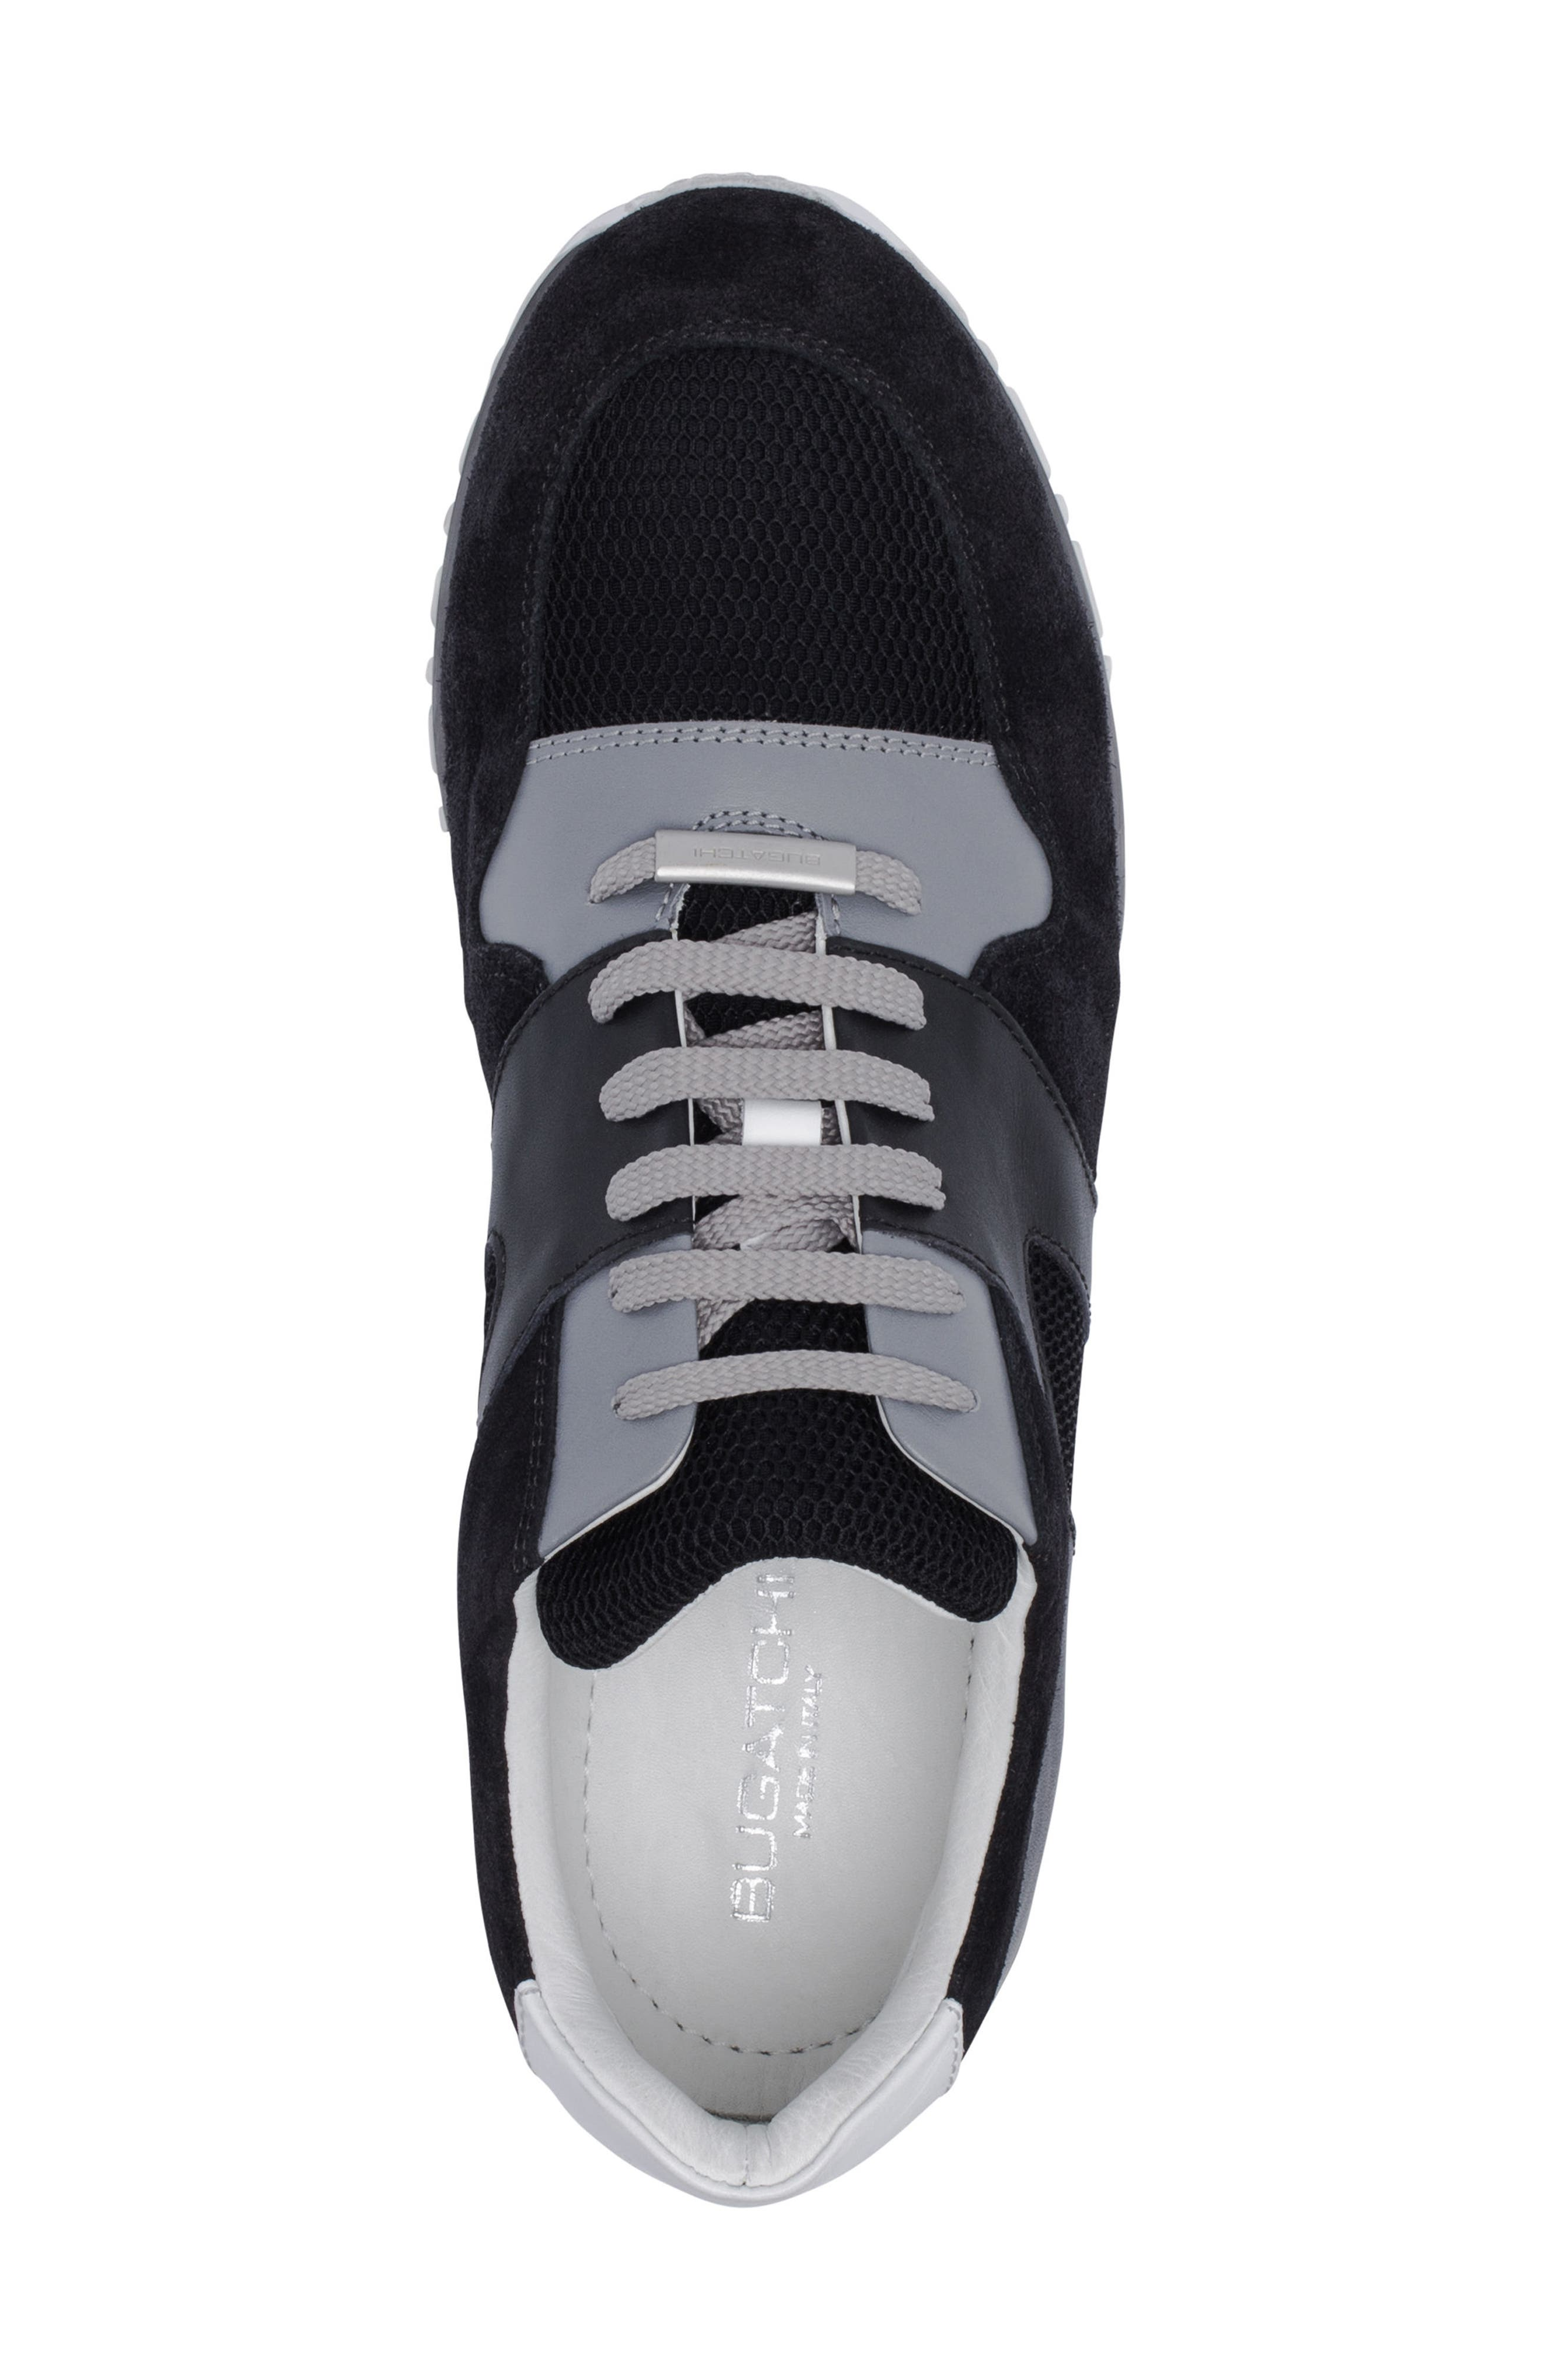 Portofino Sneaker,                             Alternate thumbnail 5, color,                             NERO